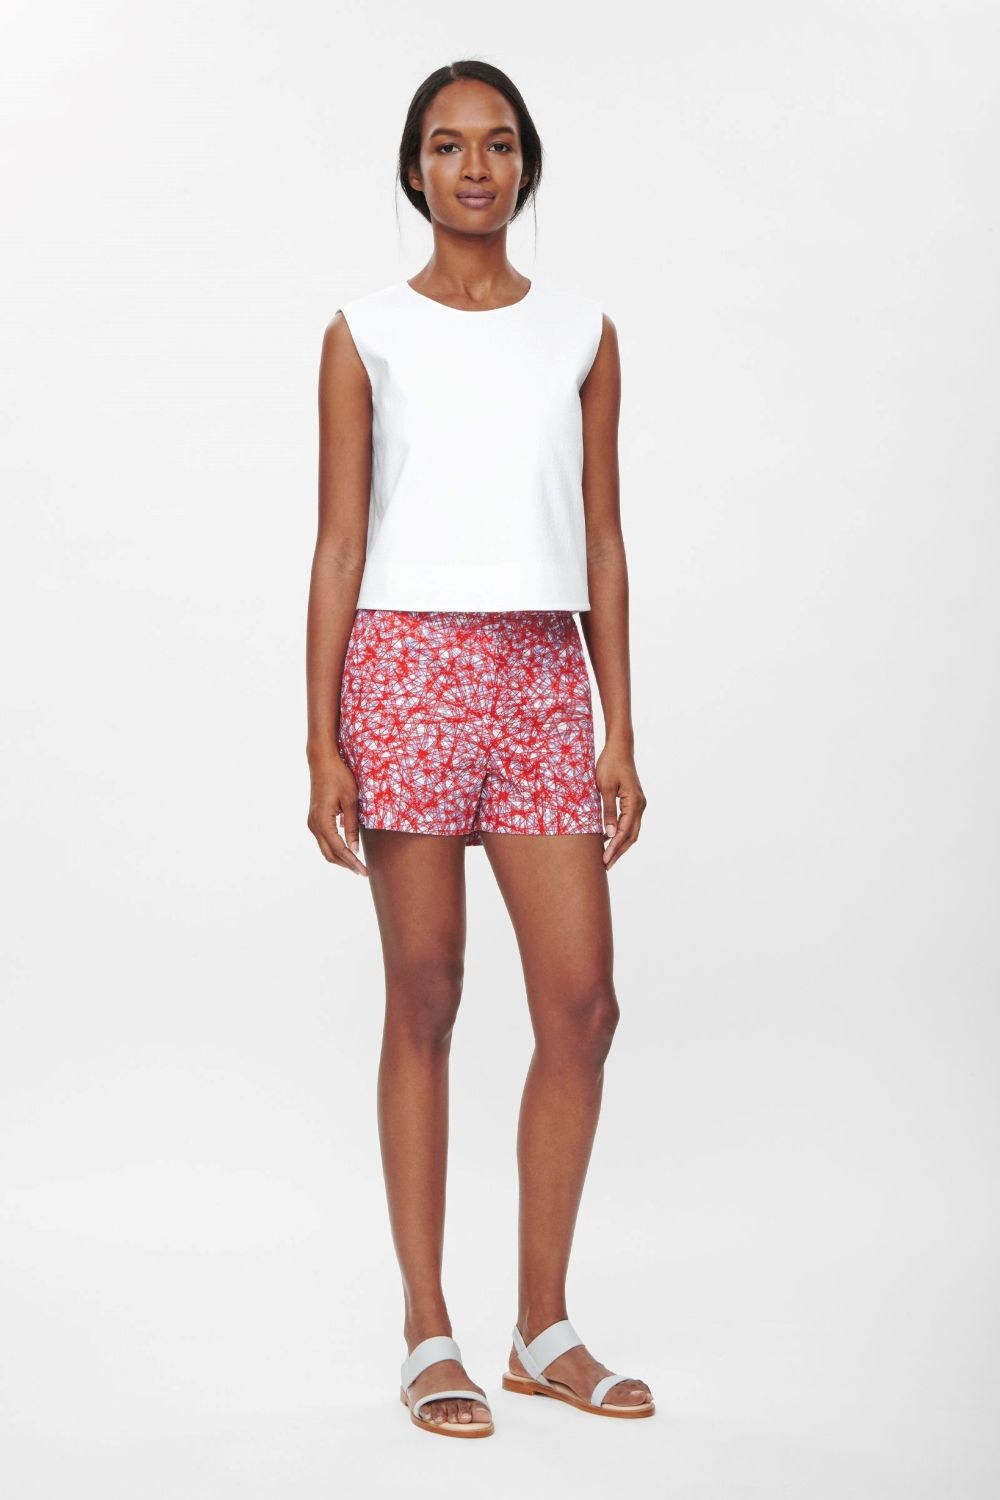 These tailored shorts are made from lightly textured cotton with an all-over graphic print. Designed to sit high on the waist, they have slanted front pockets, back welt pocket and a zip fly fastening on the front.